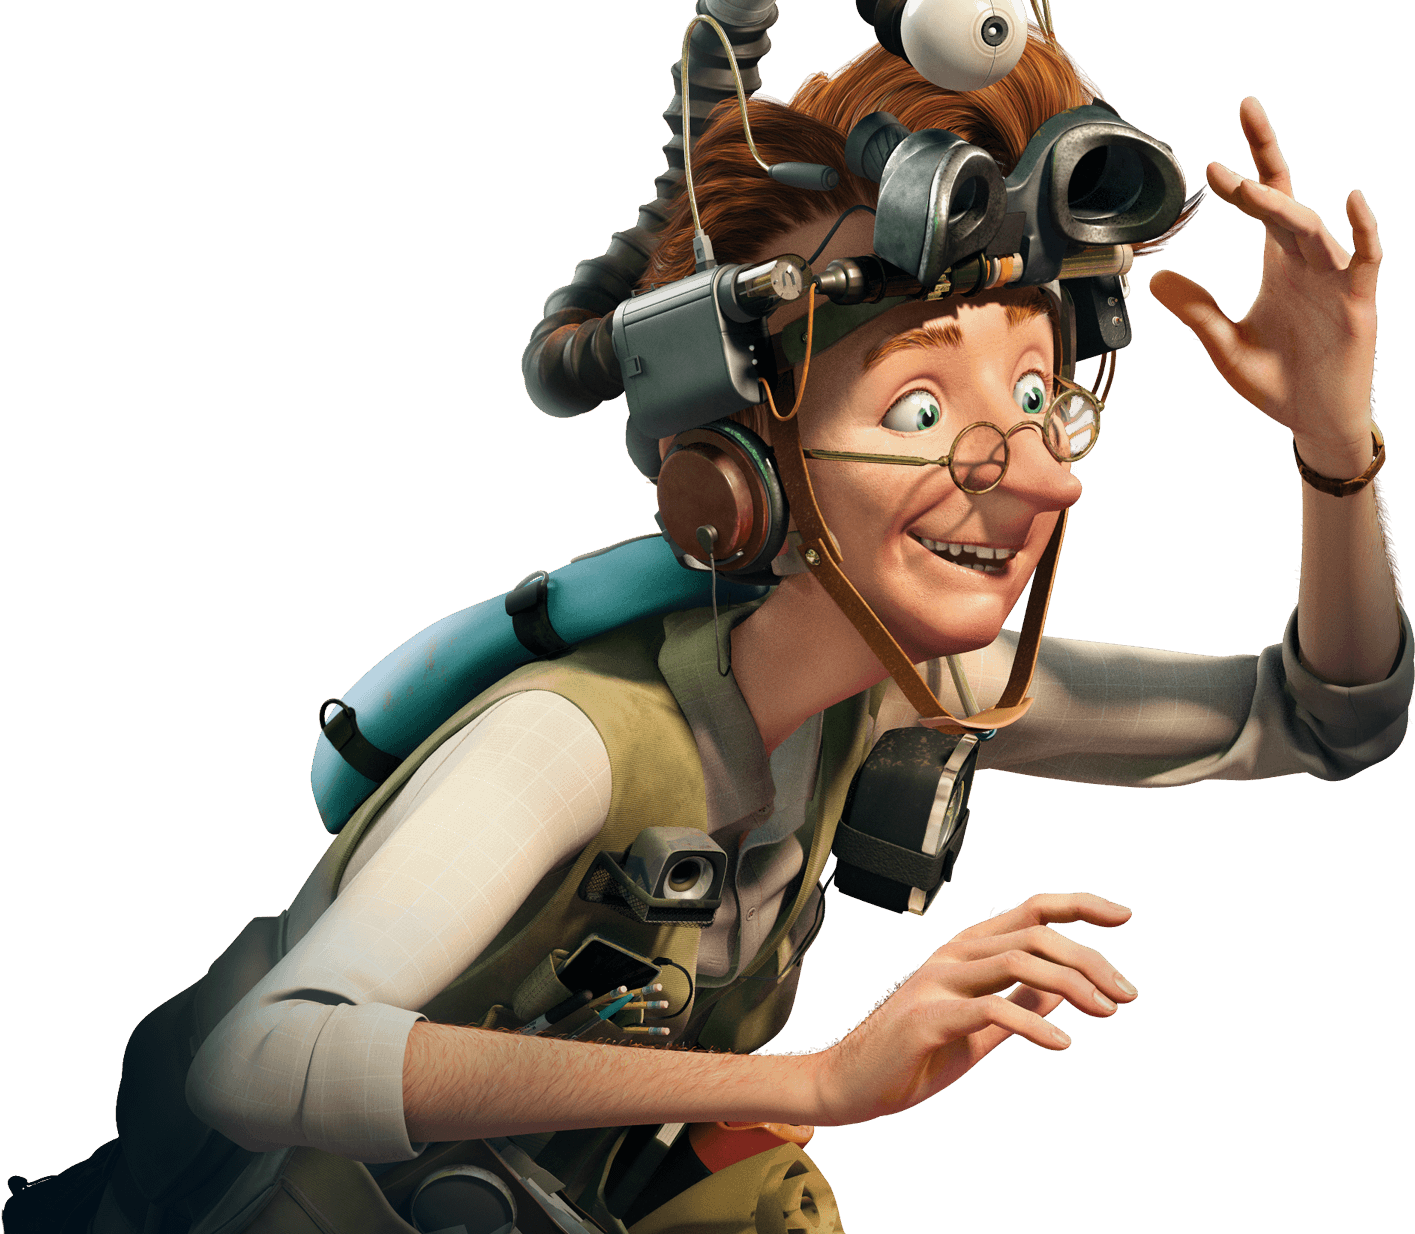 Epic The Movie Character Pictures 3d Characters Movies Pixar